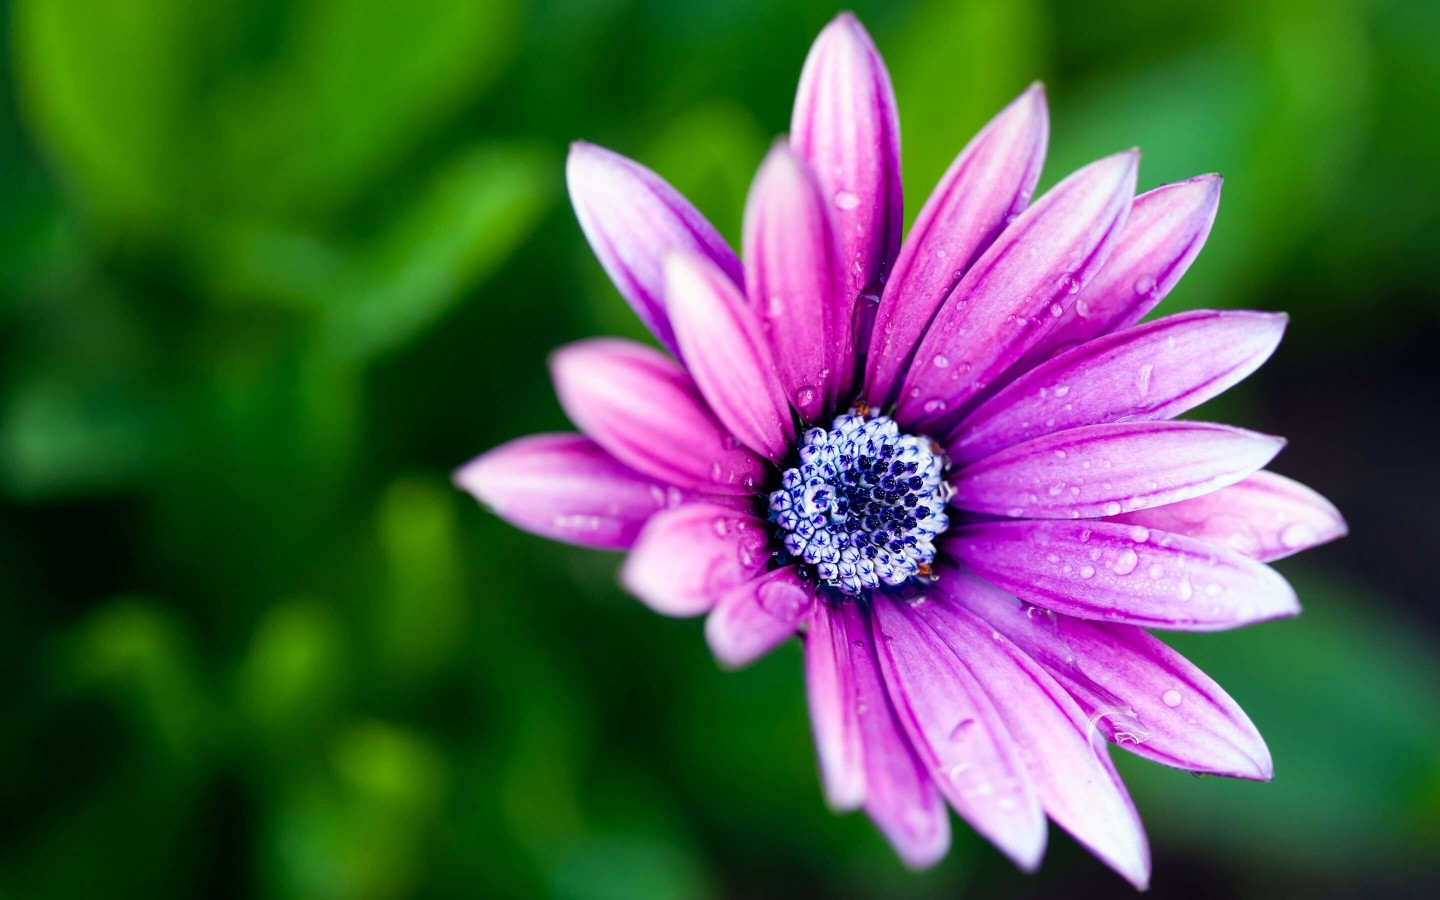 Purple Daisy Wallpaper for Desktop 1440x900